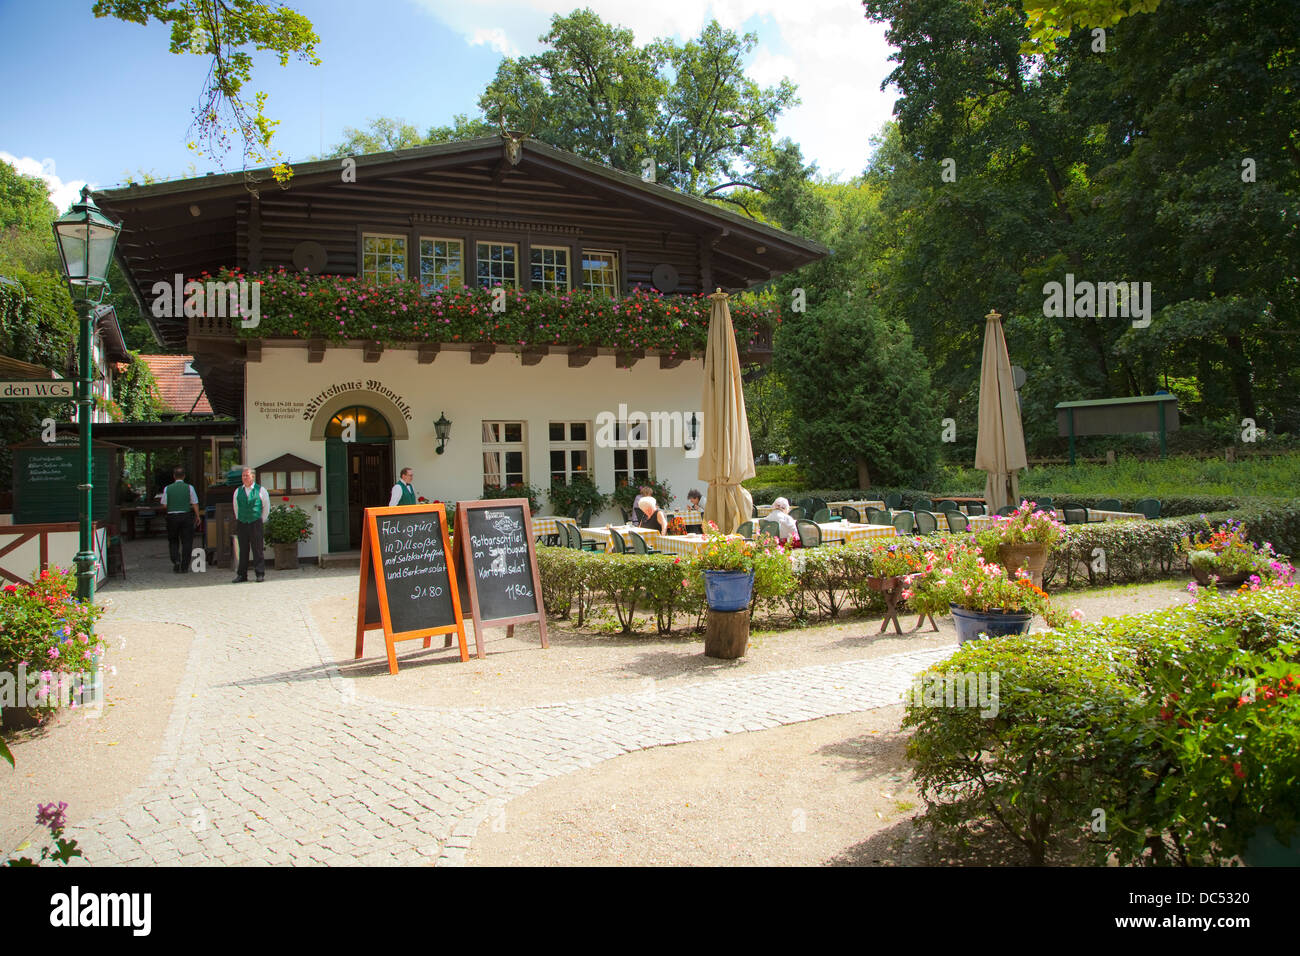 Europe, Germany, Berlin, Zehlendorf, Wirtshaus Moorlake - Stock Image